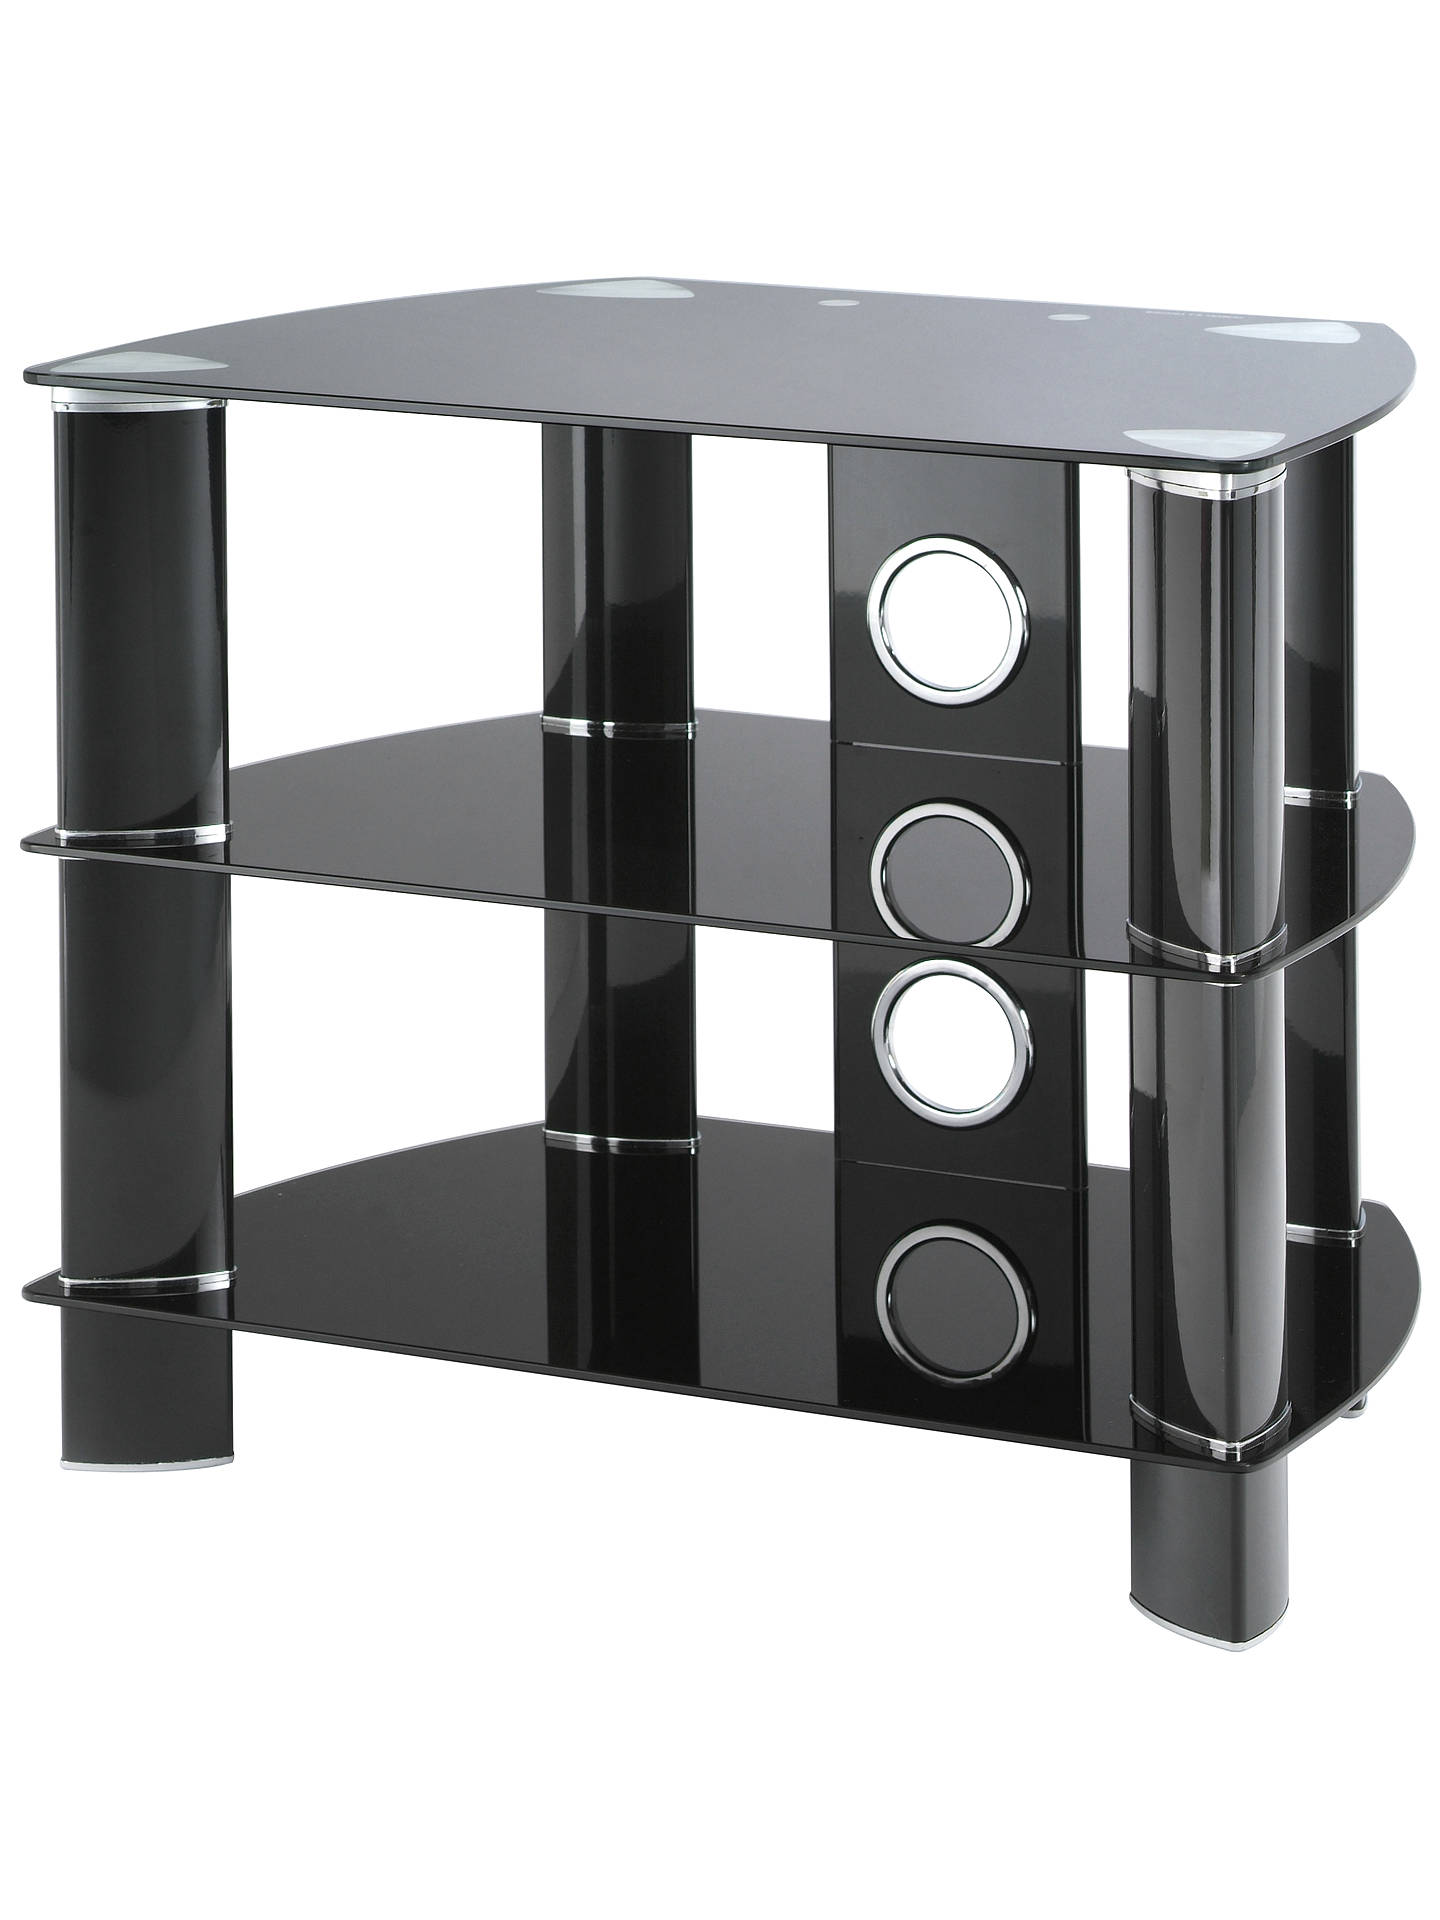 John Lewis JL600/B10 Television Stand for TVs up to 26